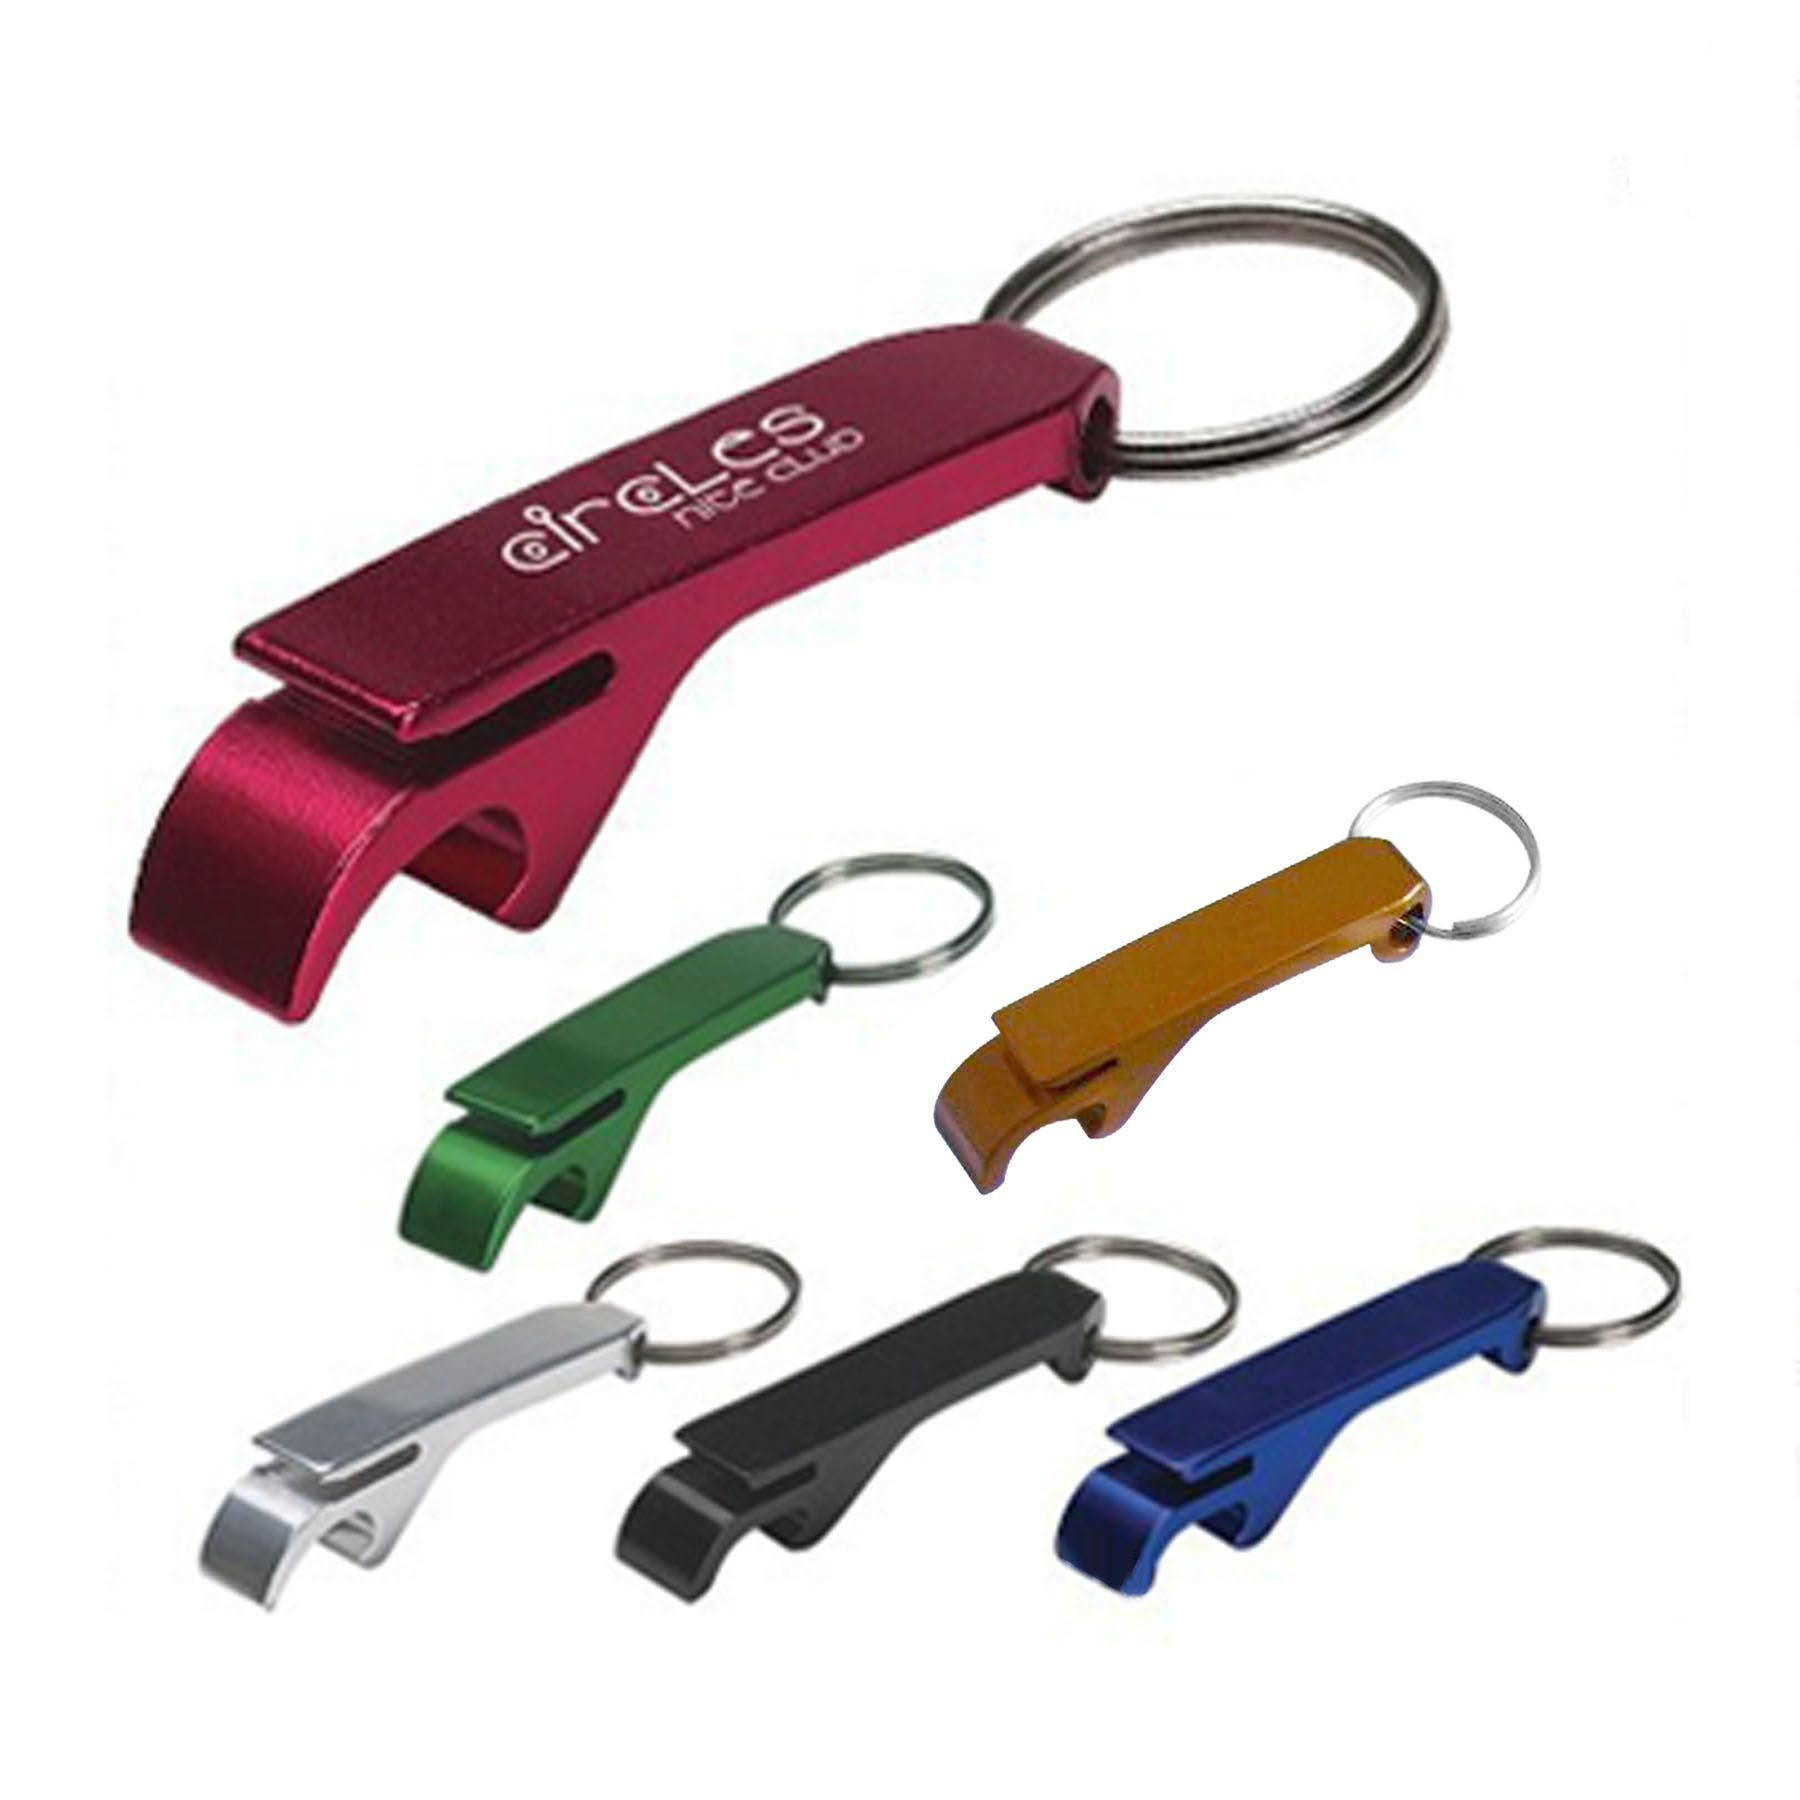 Bottle Opener with key ring Promotional keychain sold by Ink Splash Promos, LLC